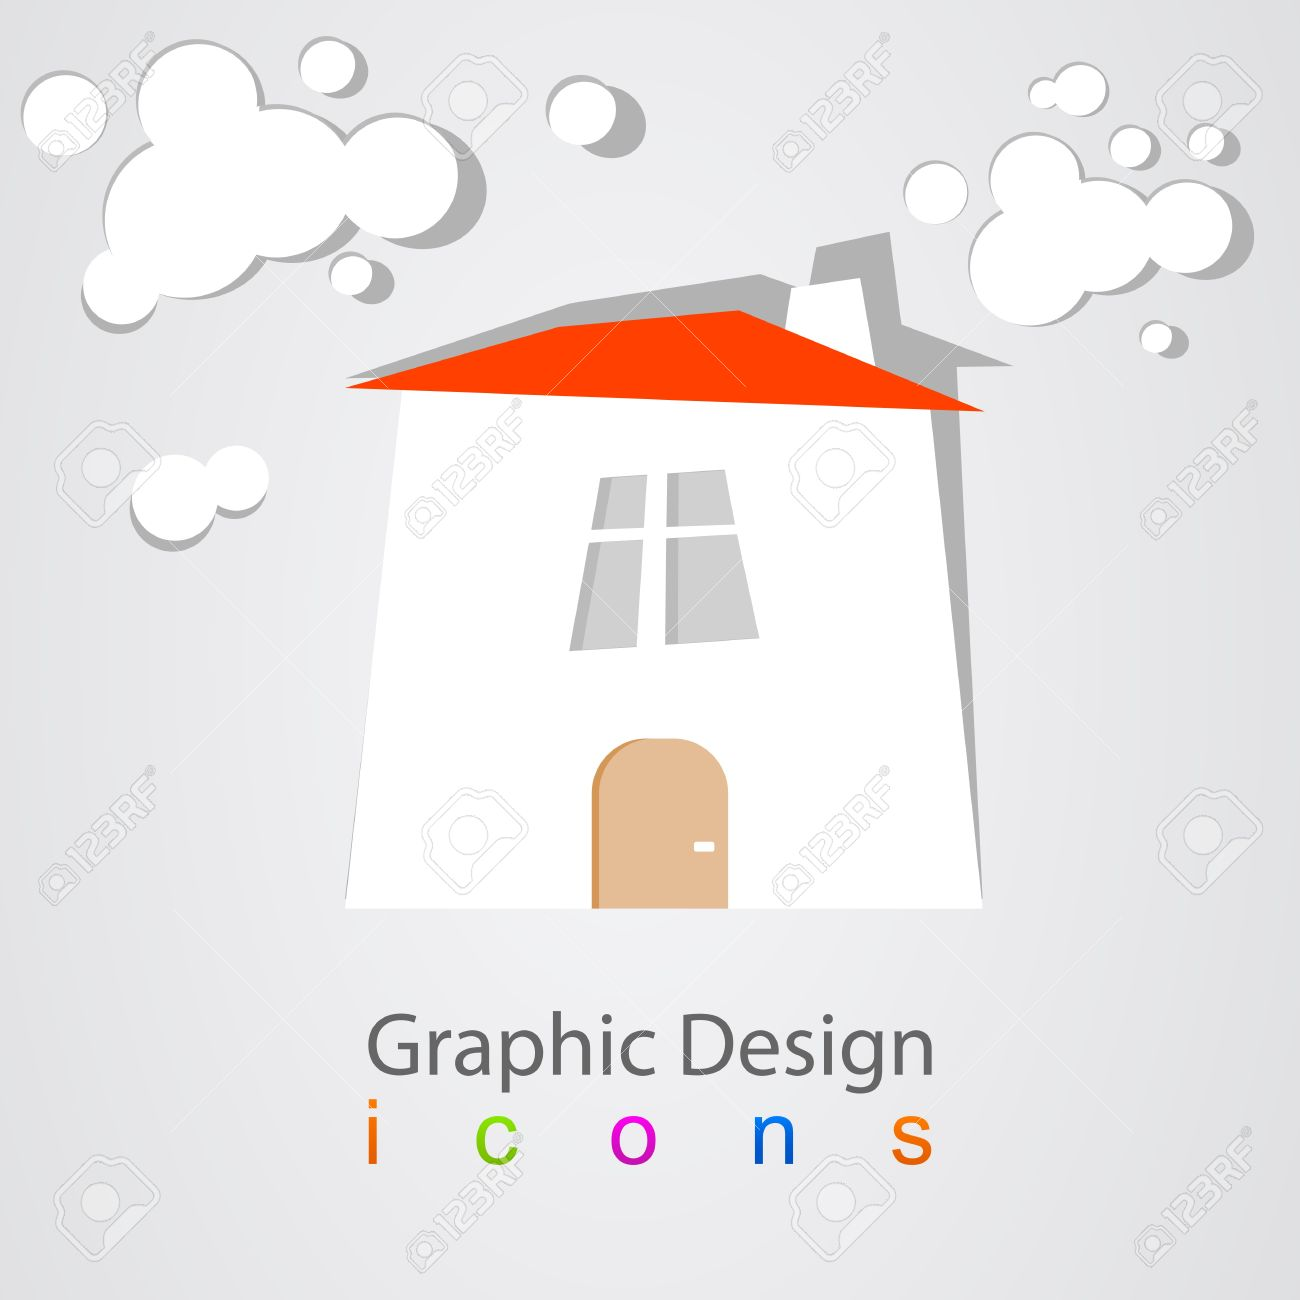 Graphic Design House Clouds Royalty Free Cliparts, Vectors, And.